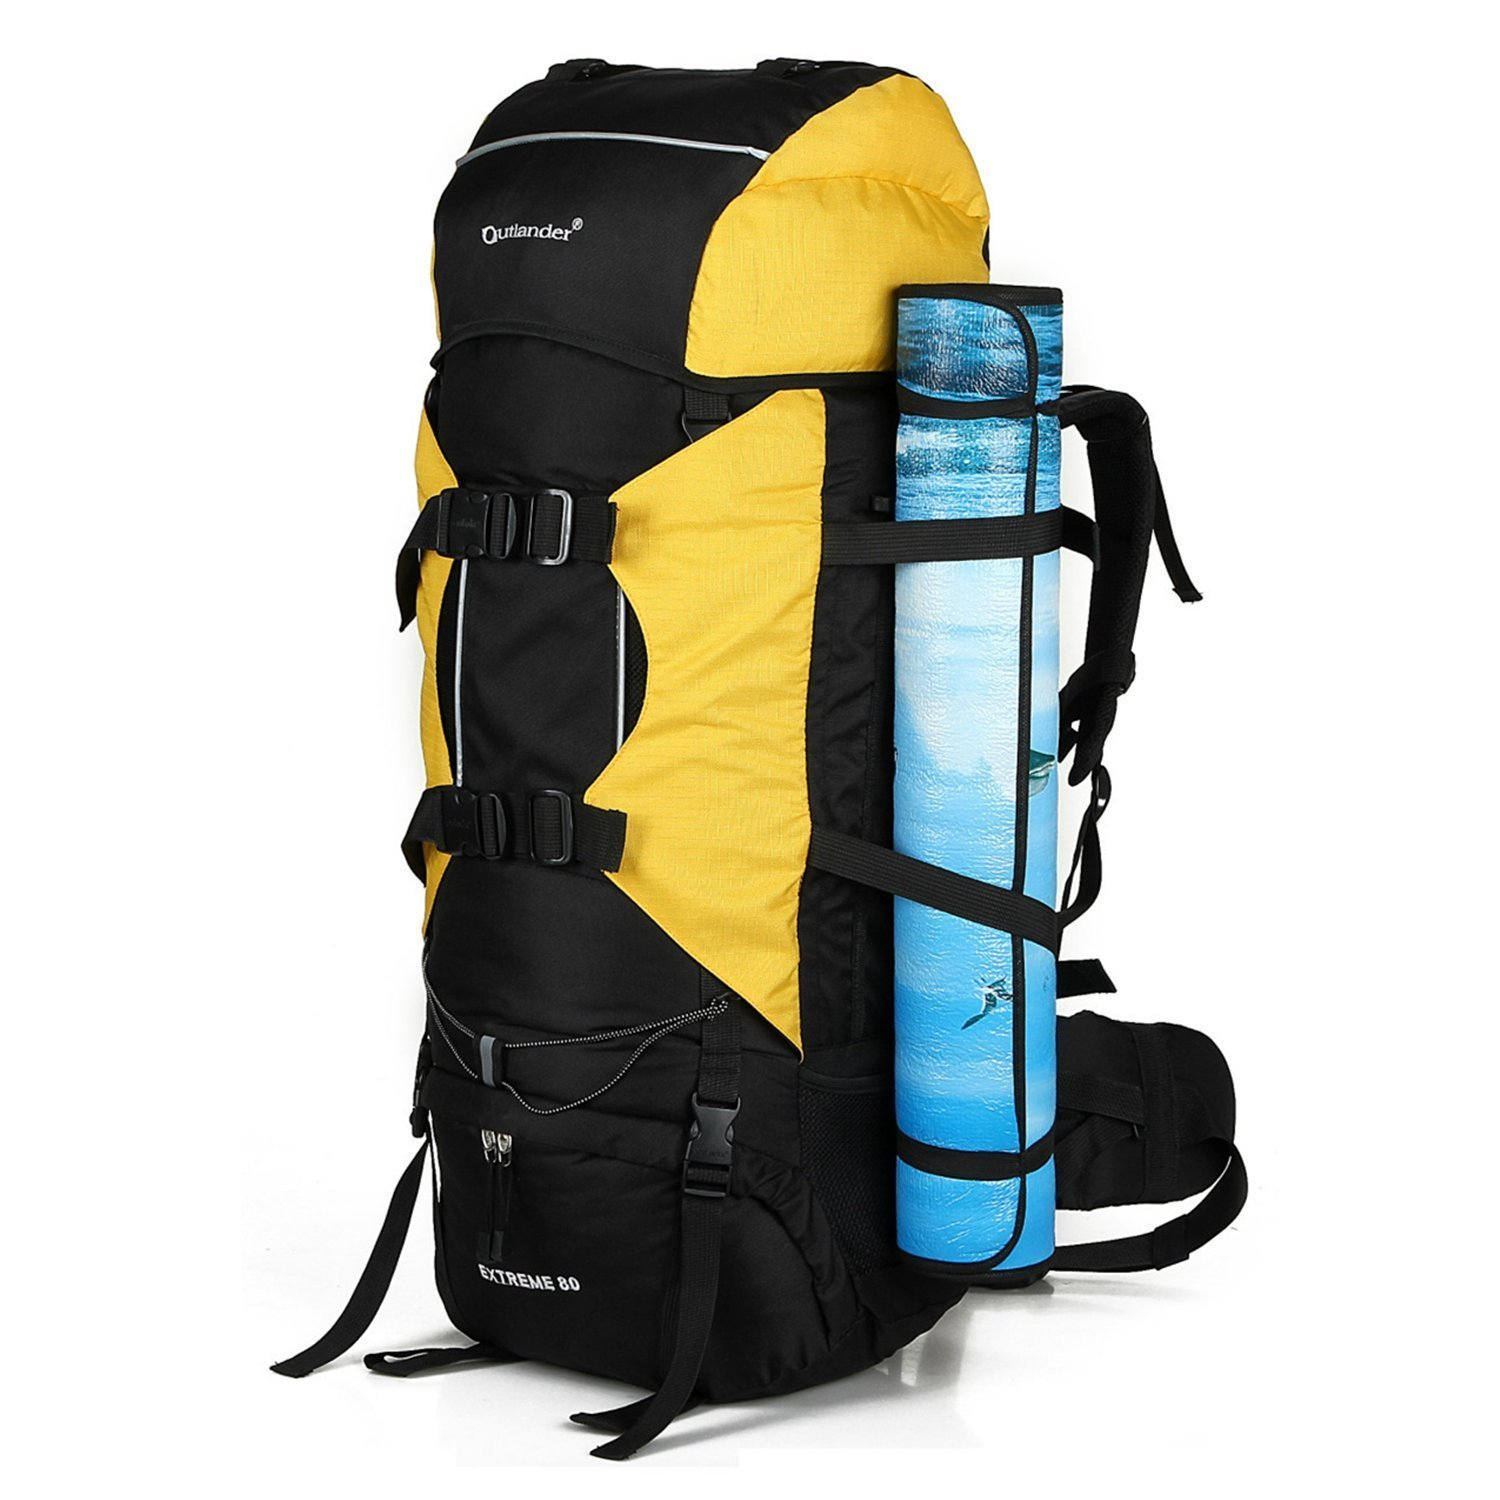 Amoyie Trekking Rucksack 3 Set (70L Backpack and 10L Backpack and Rain Poncho), Perfect Luggage Set for Travel Outside, Bag Blue